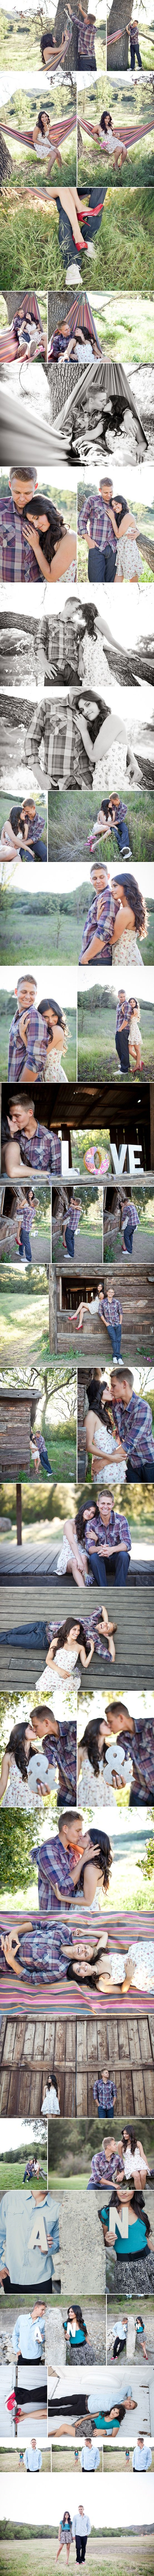 I love everything about these engagement pictures.